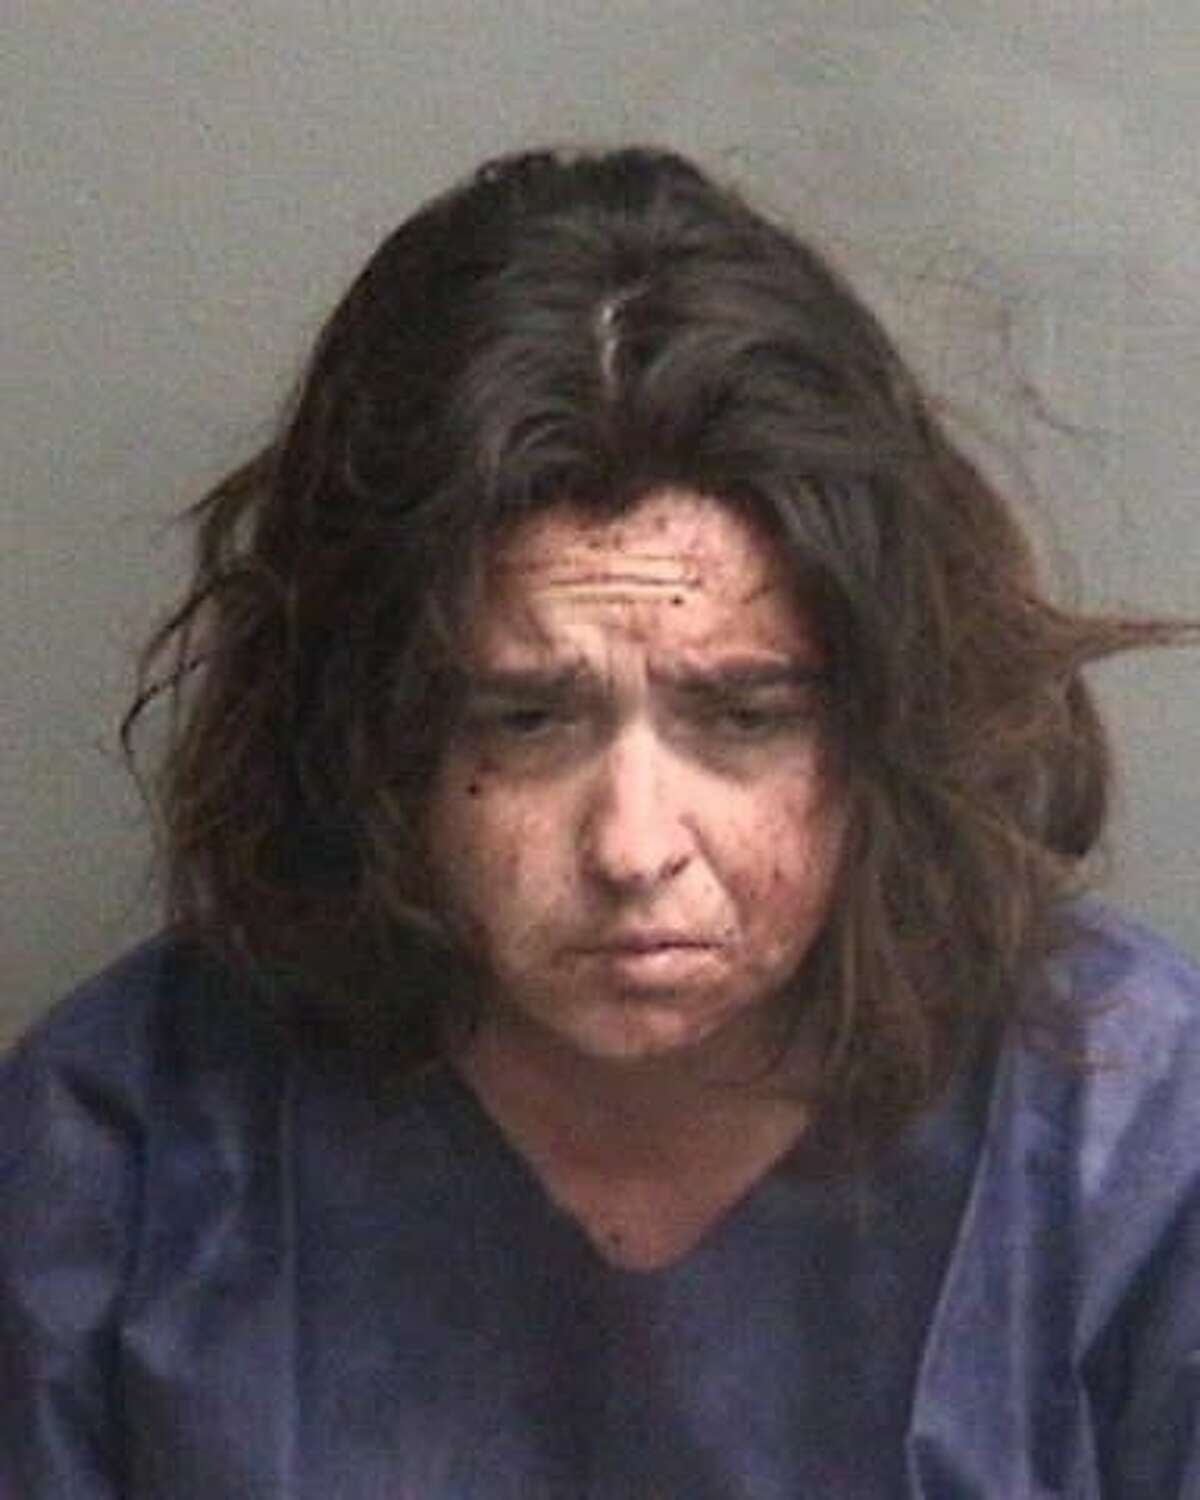 Dominique Zazueta is accused of killing her mother in Hayward